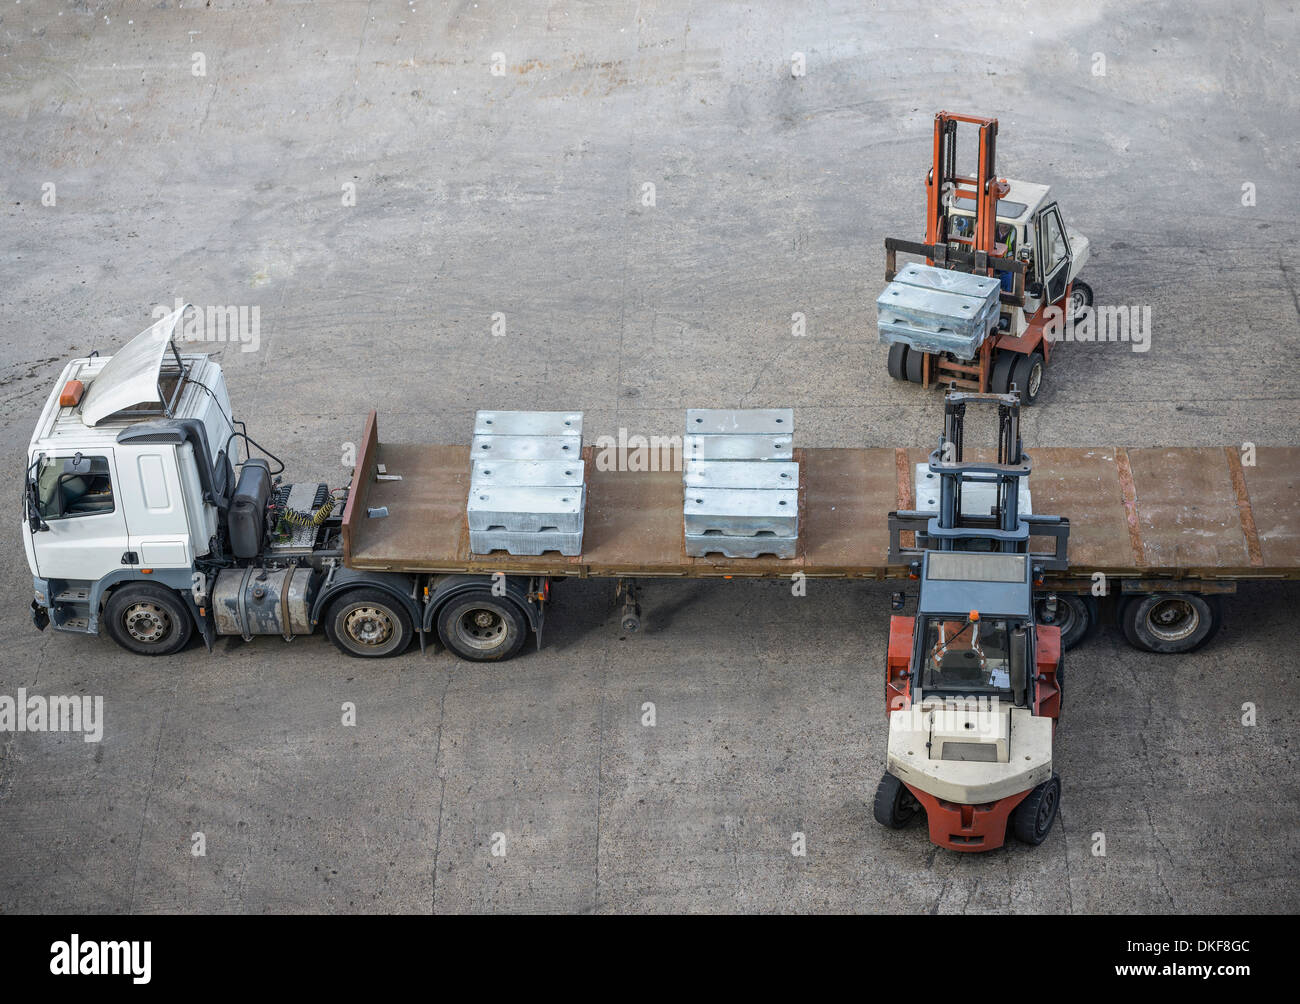 High angle view of fork lift trucks loading alloy ingots onto transport - Stock Image